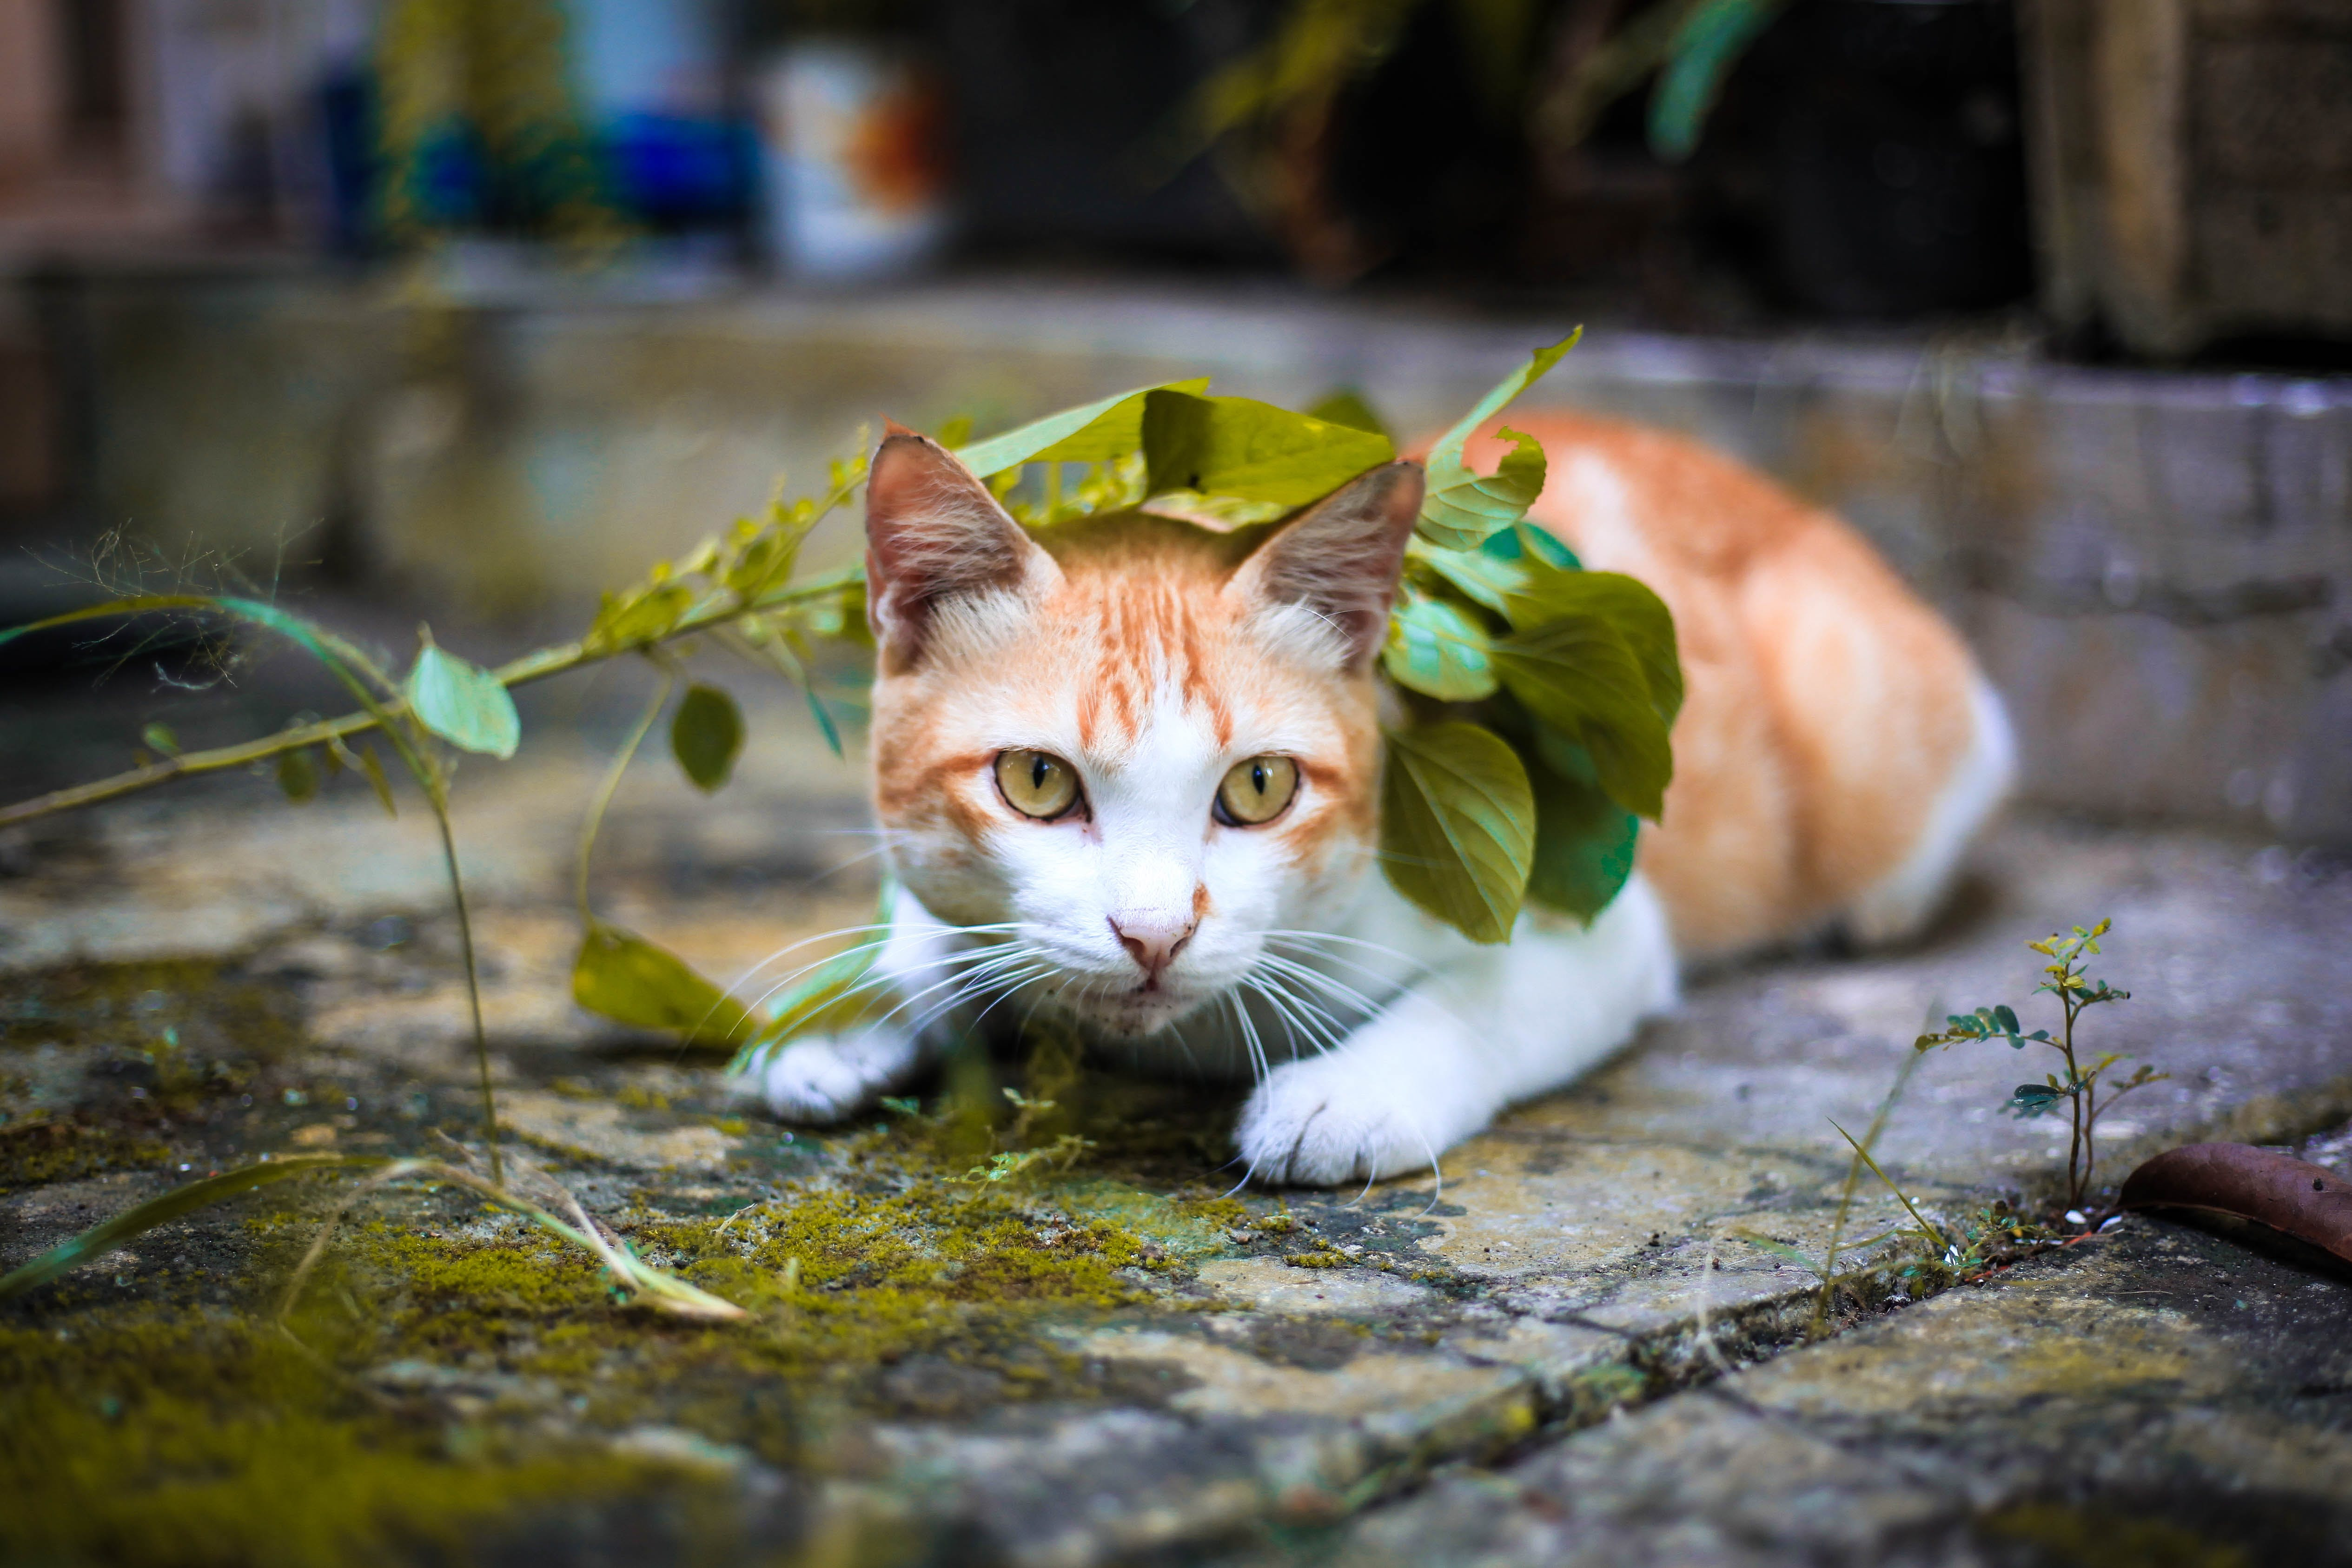 Orange and White Tabby Cat Lying on Mossy Gray Pavement Under Green Leaves Selective Focus Photo